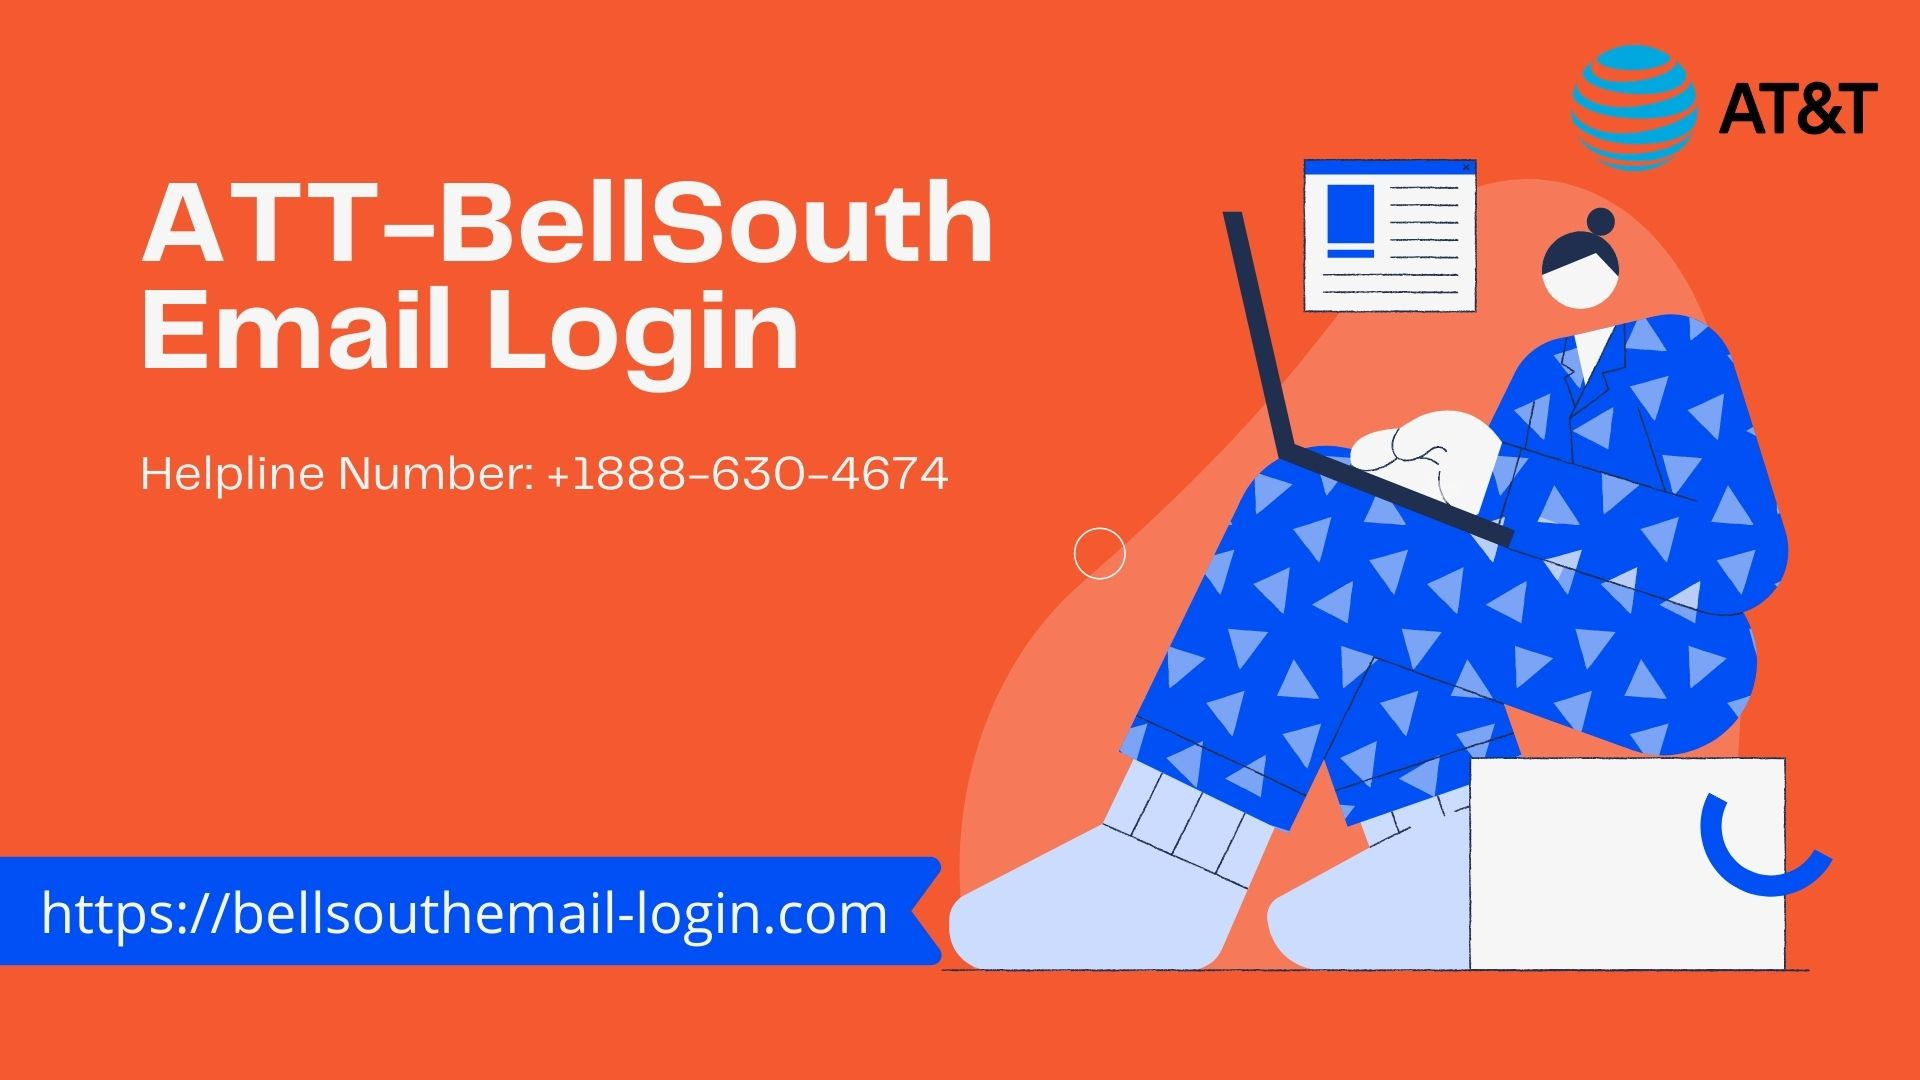 How to Login to Bellsouth.net Email Through ATT Sign in Page